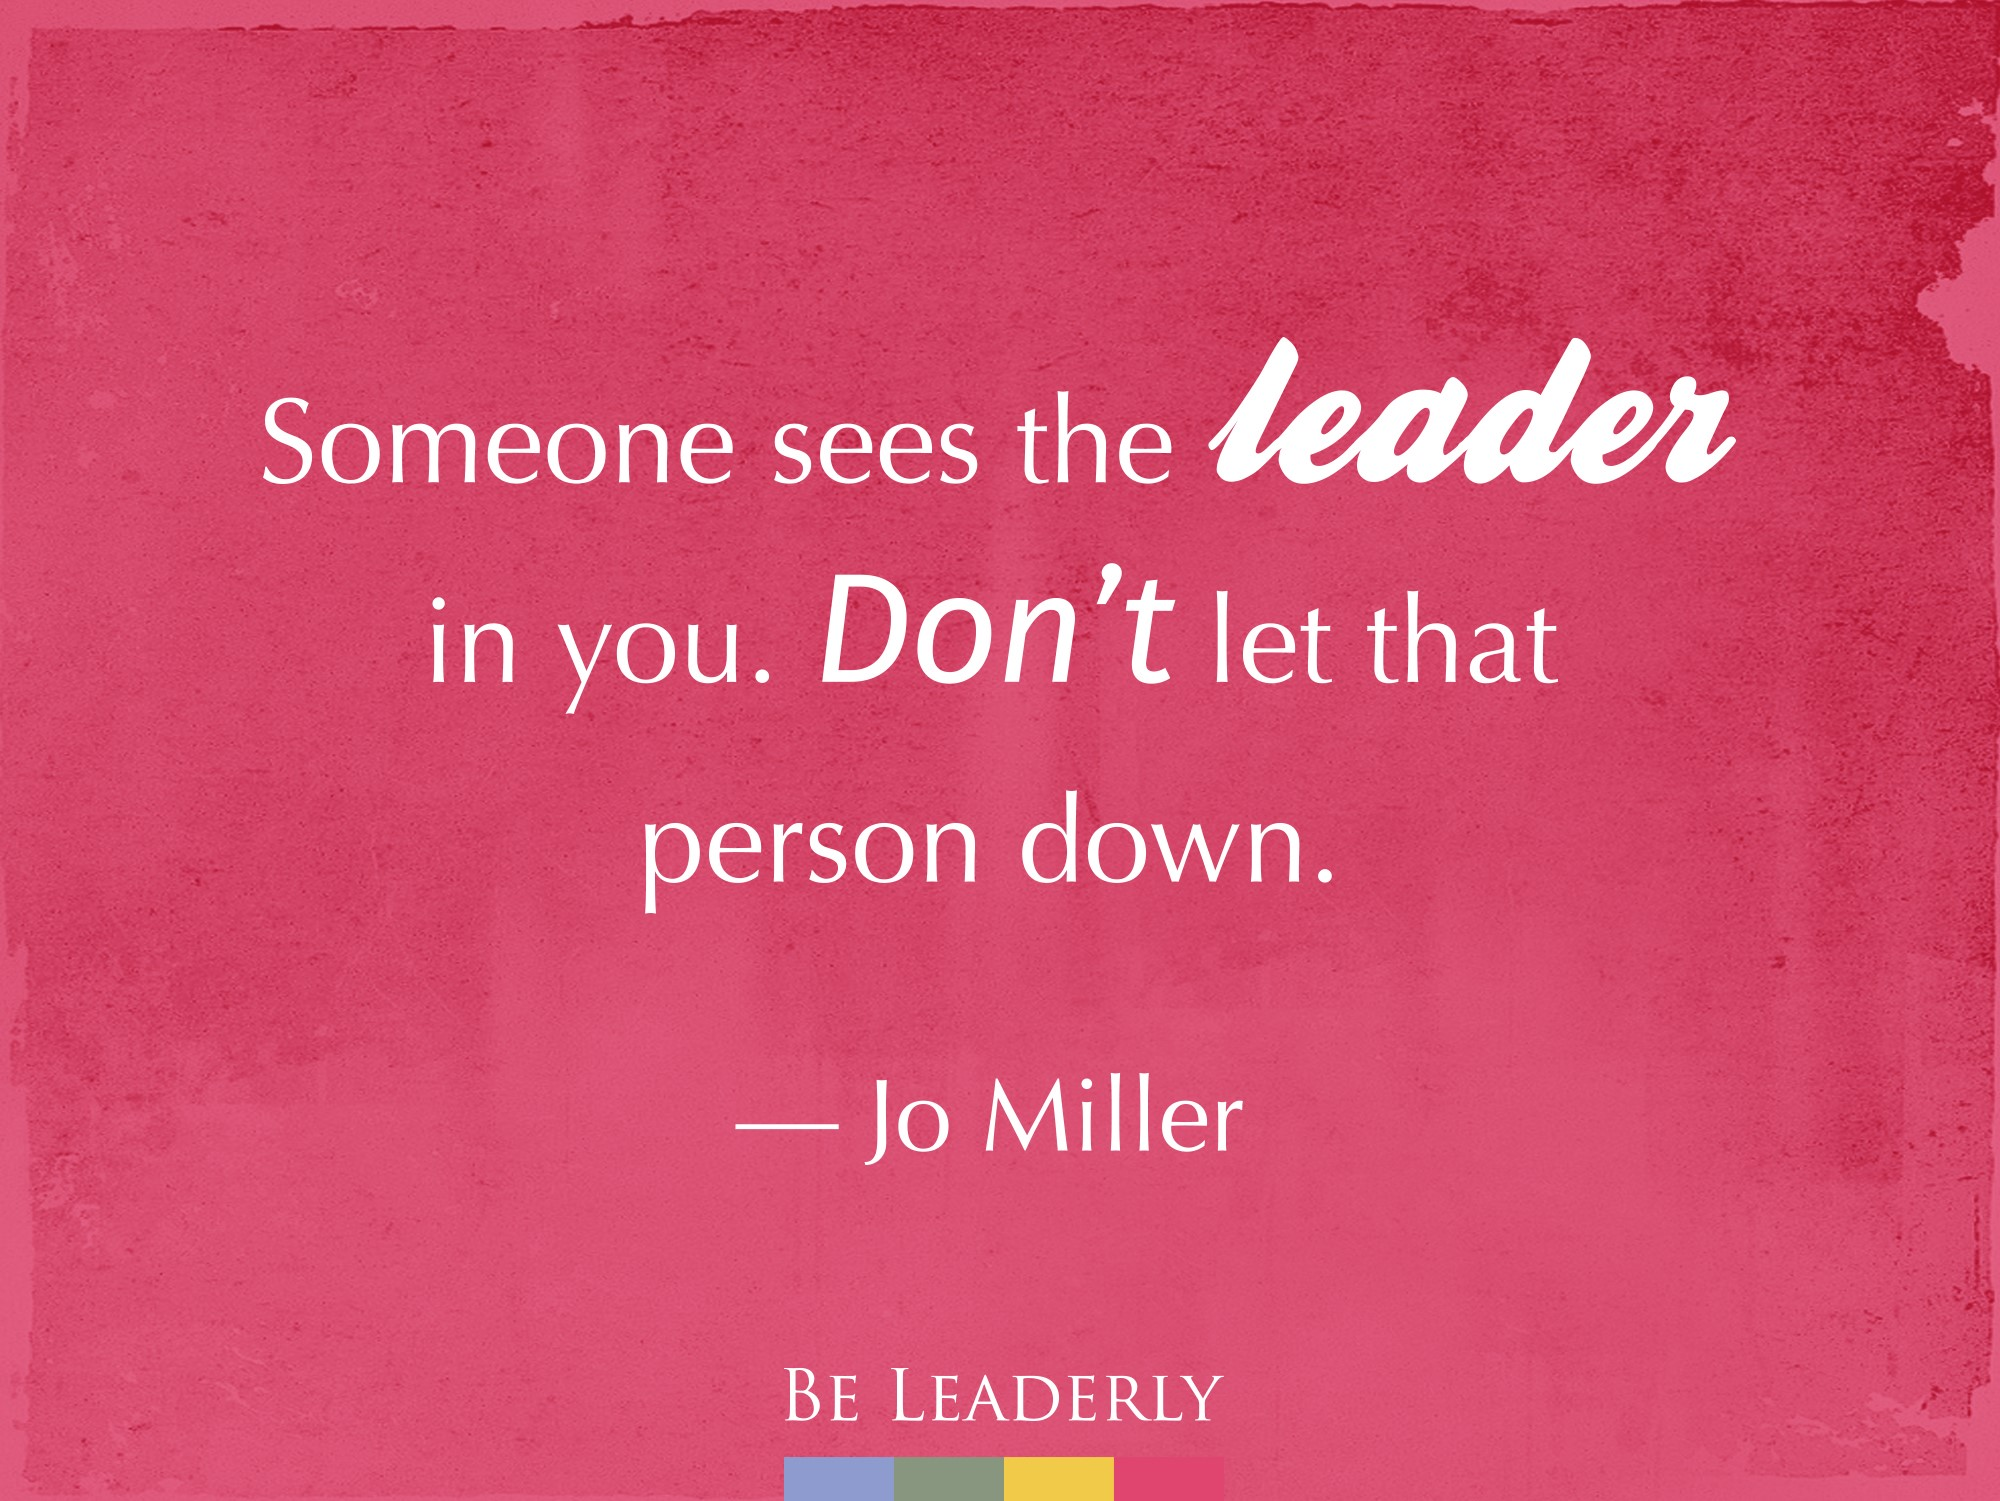 Someone sees the leader in you